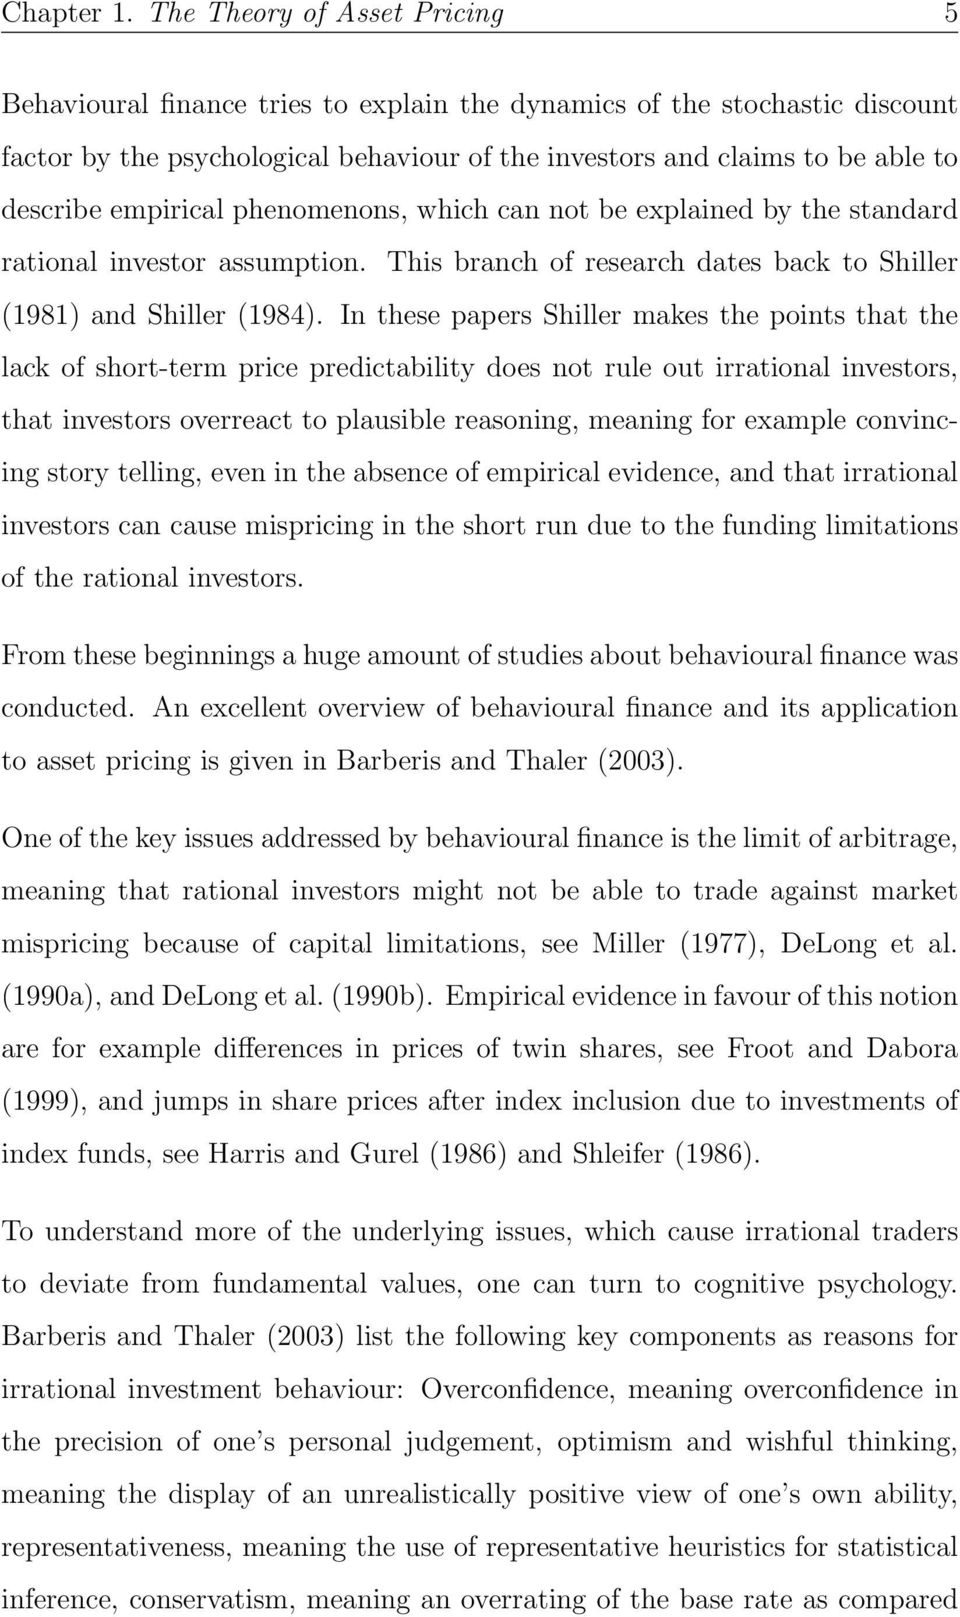 empirical phenomenons, which can not be explained by the standard rational investor assumption. This branch of research dates back to Shiller (1981) and Shiller (1984).